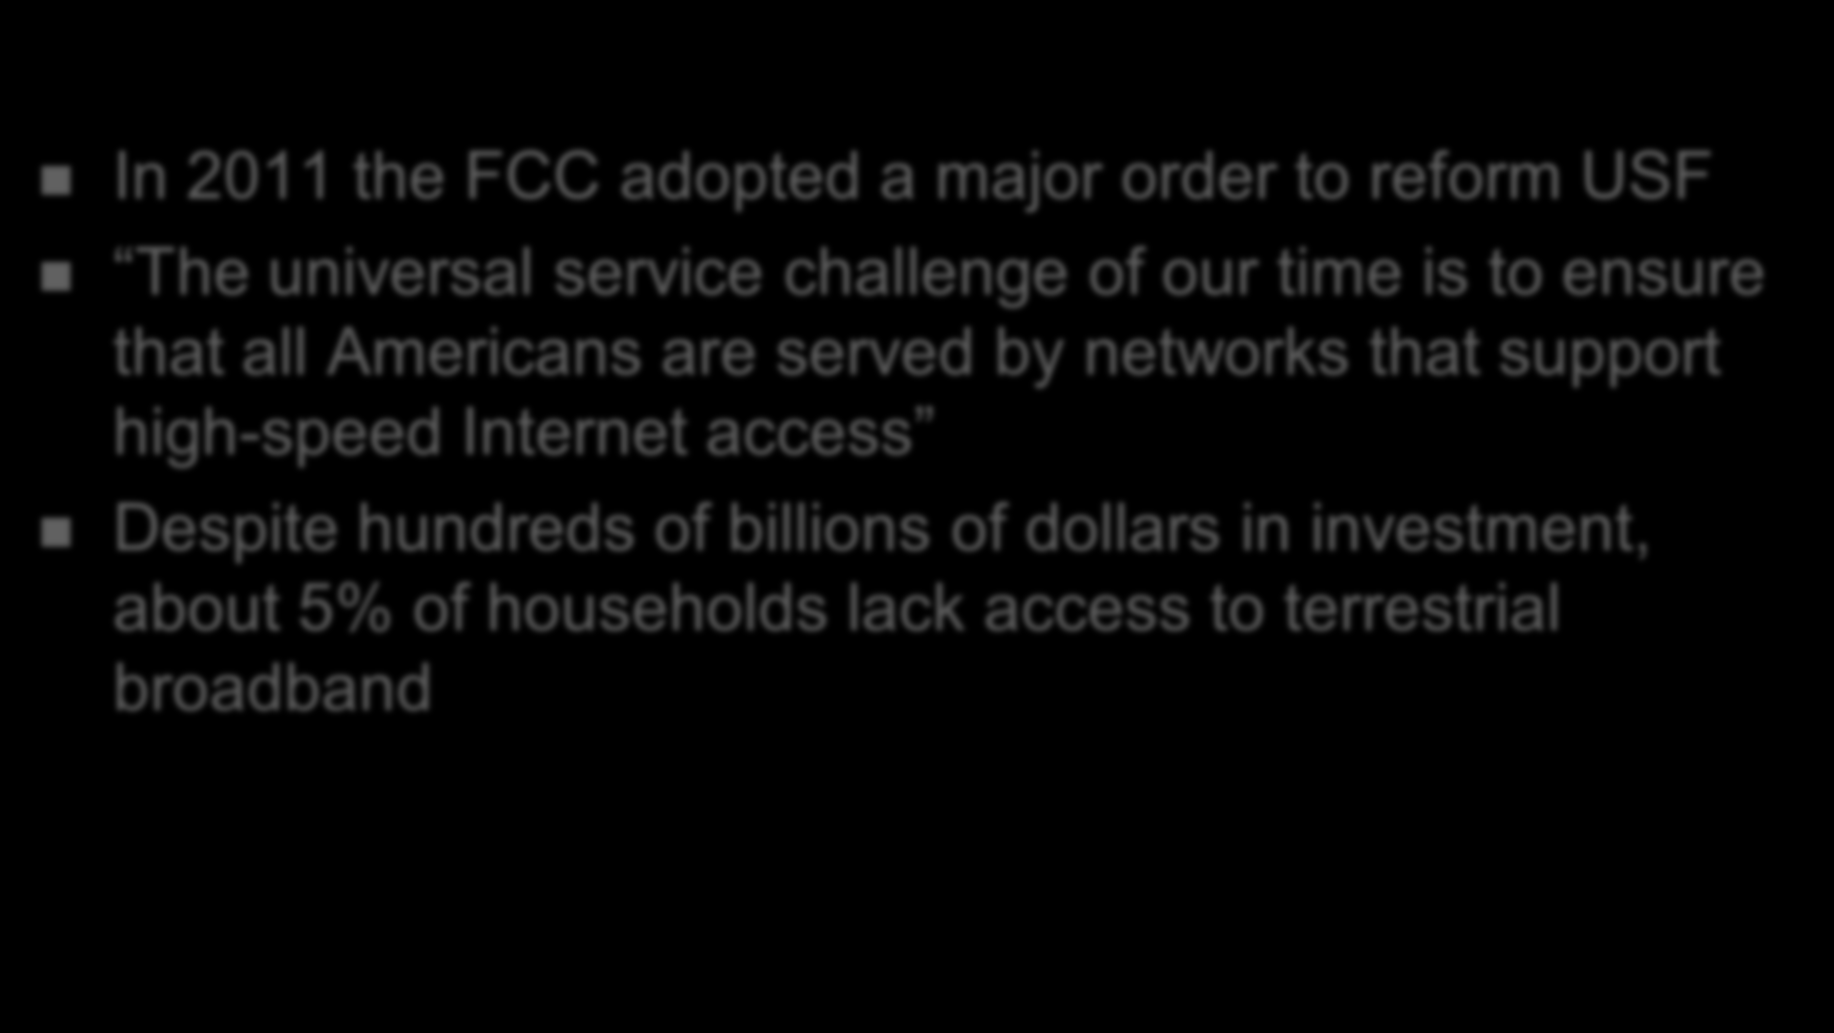 USF Reform In 2011 the FCC adopted a major order to reform USF The universal service challenge of our time is to ensure that all Americans are served by